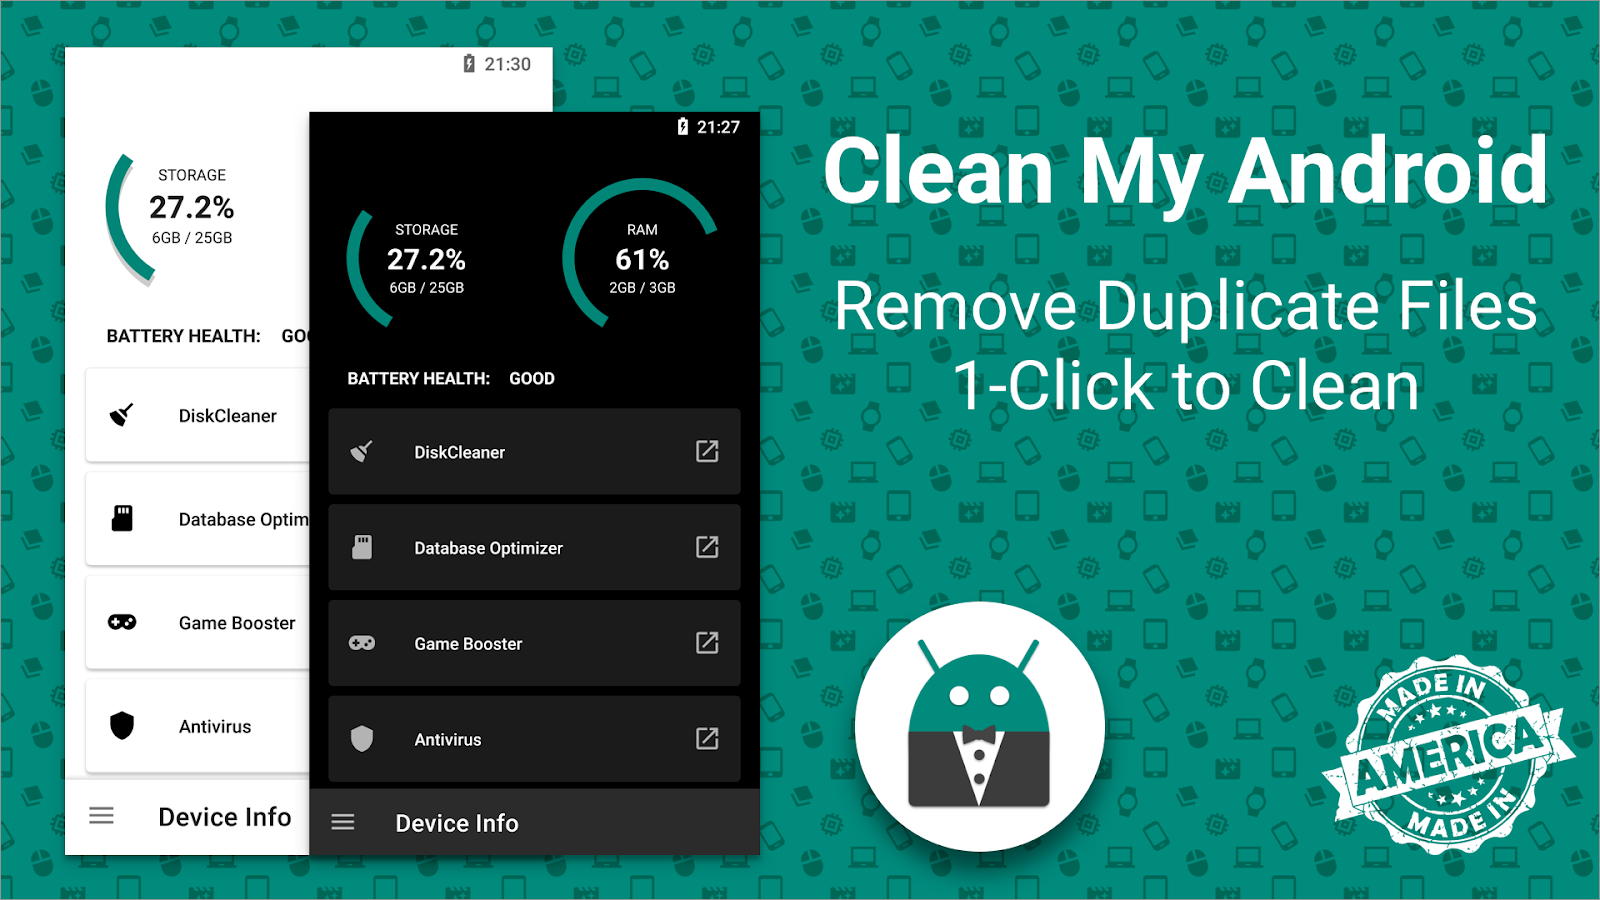 Clean My Android 6 0 5 APK Download - Android Productivity Apps